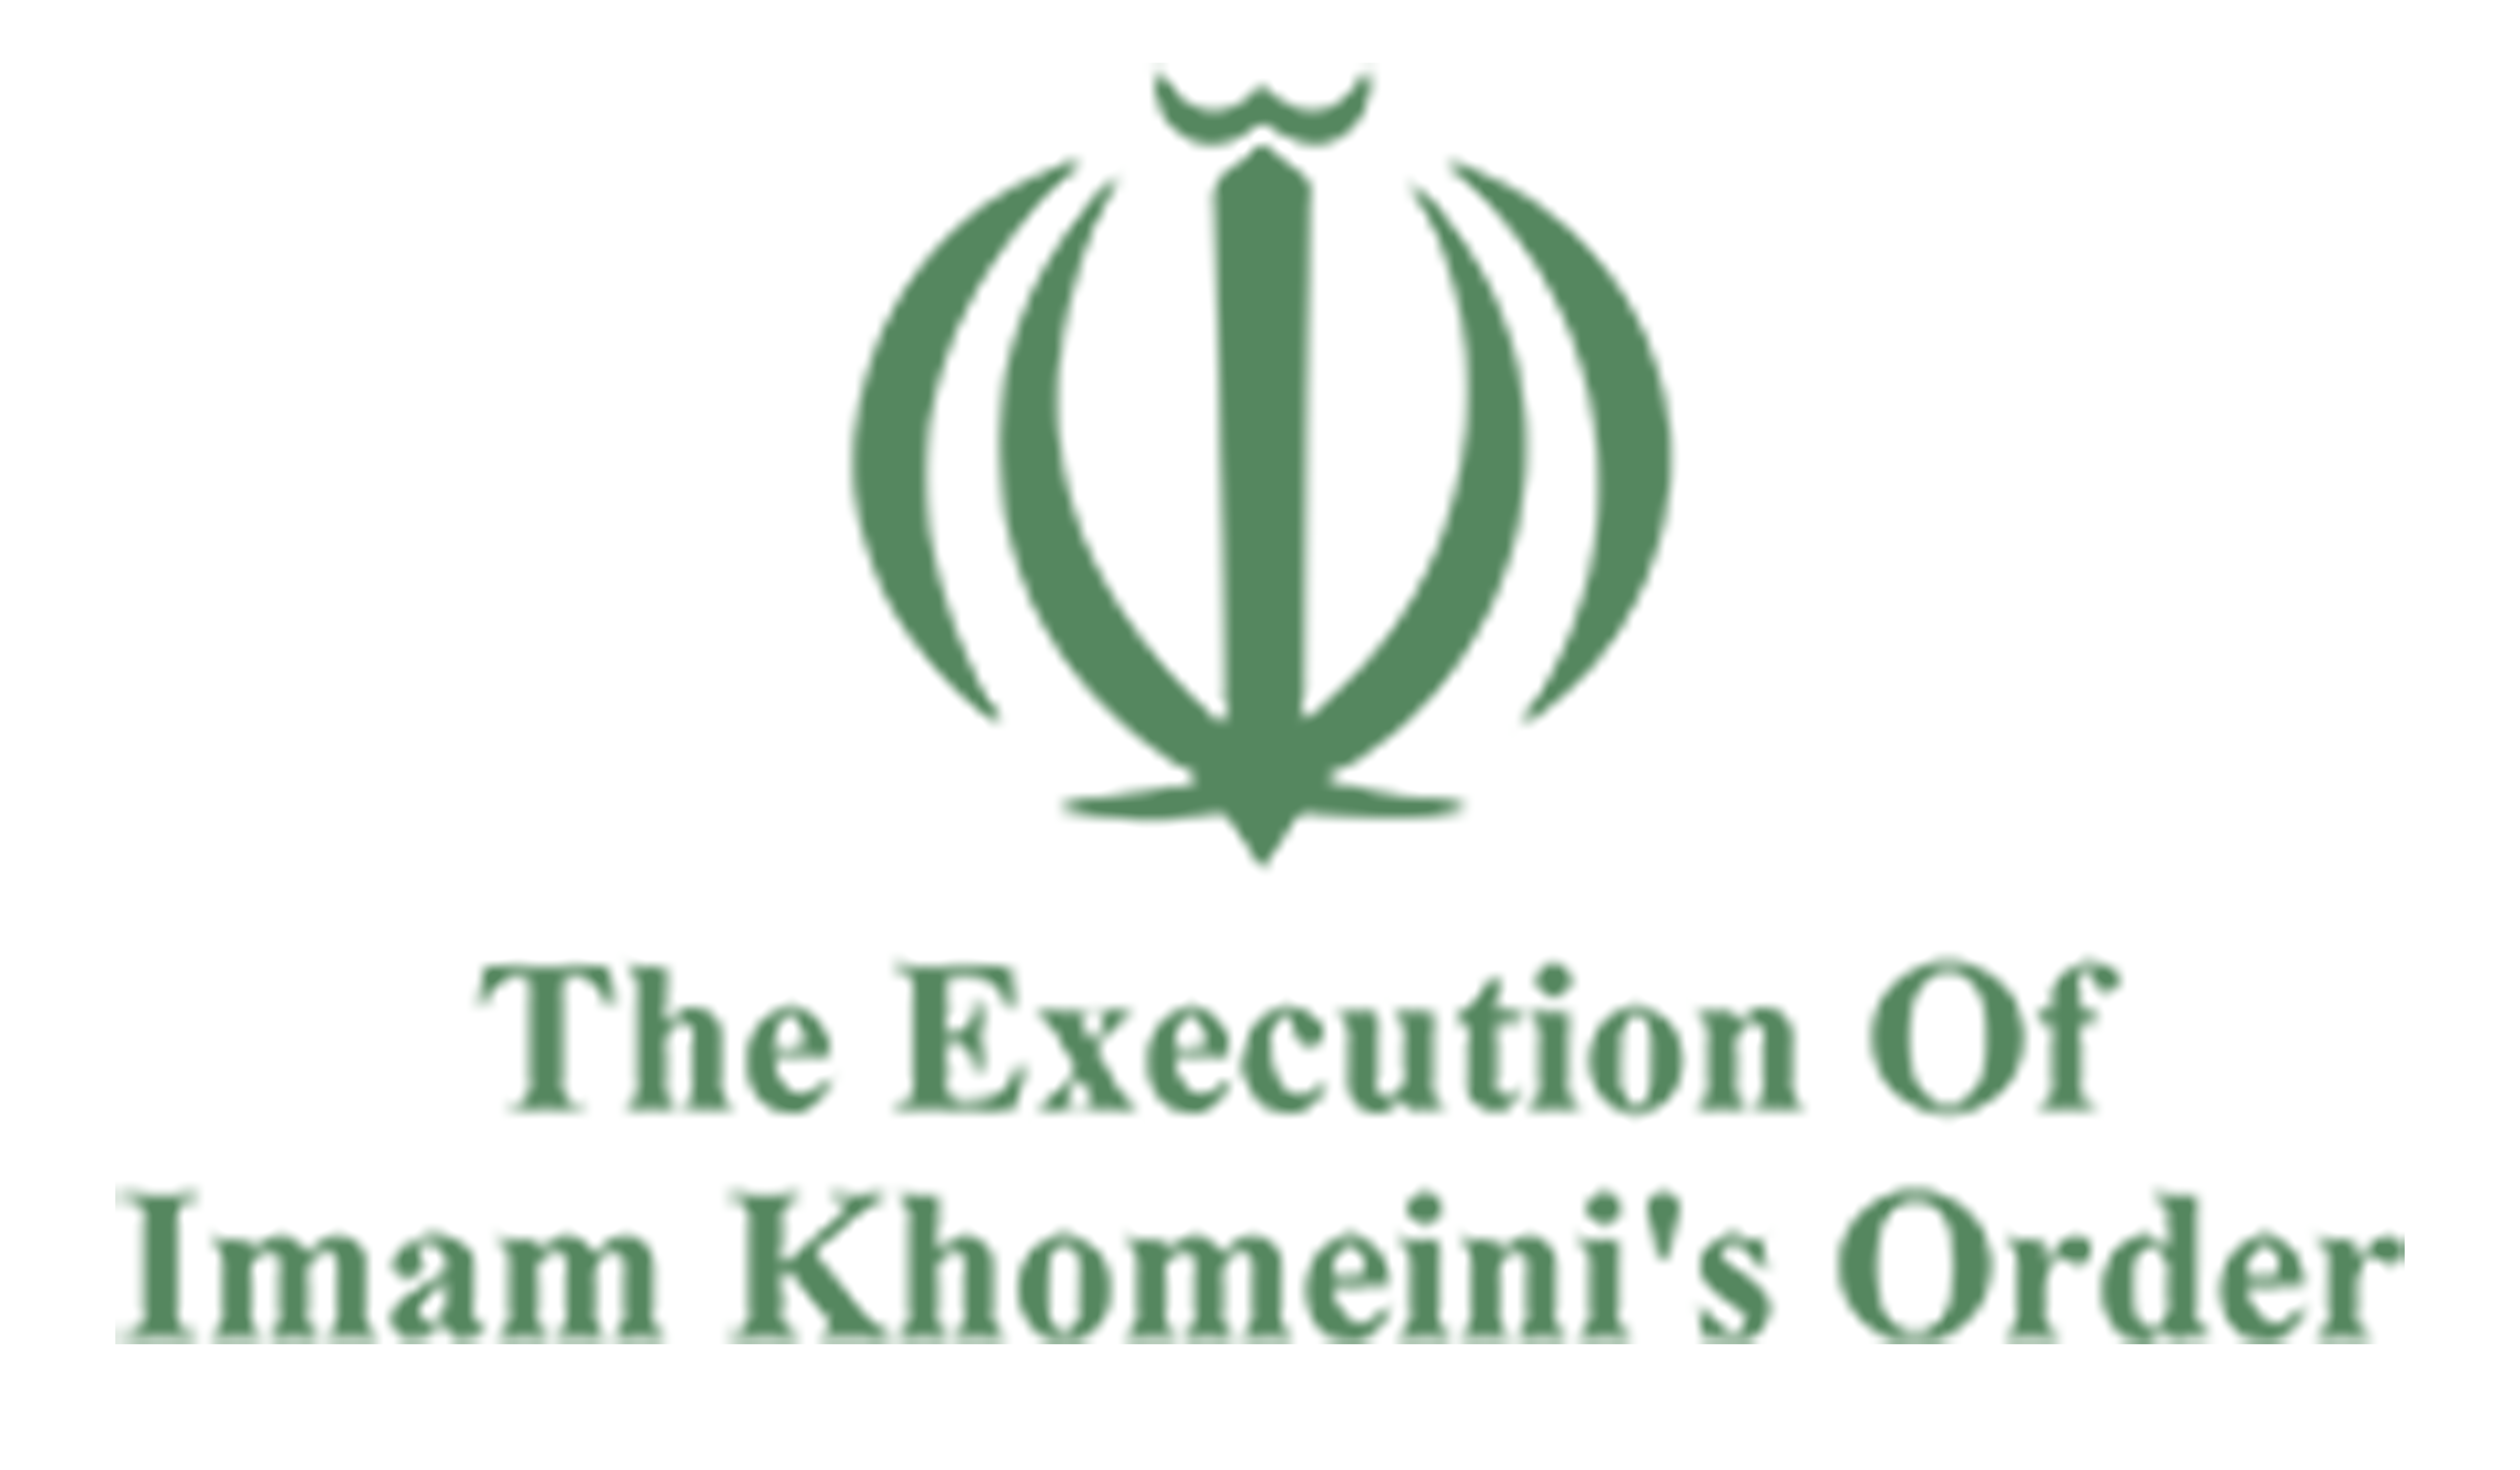 Findings of the Stolen Lands Database: Executive Headquarters of Imam  Khomeini's Order